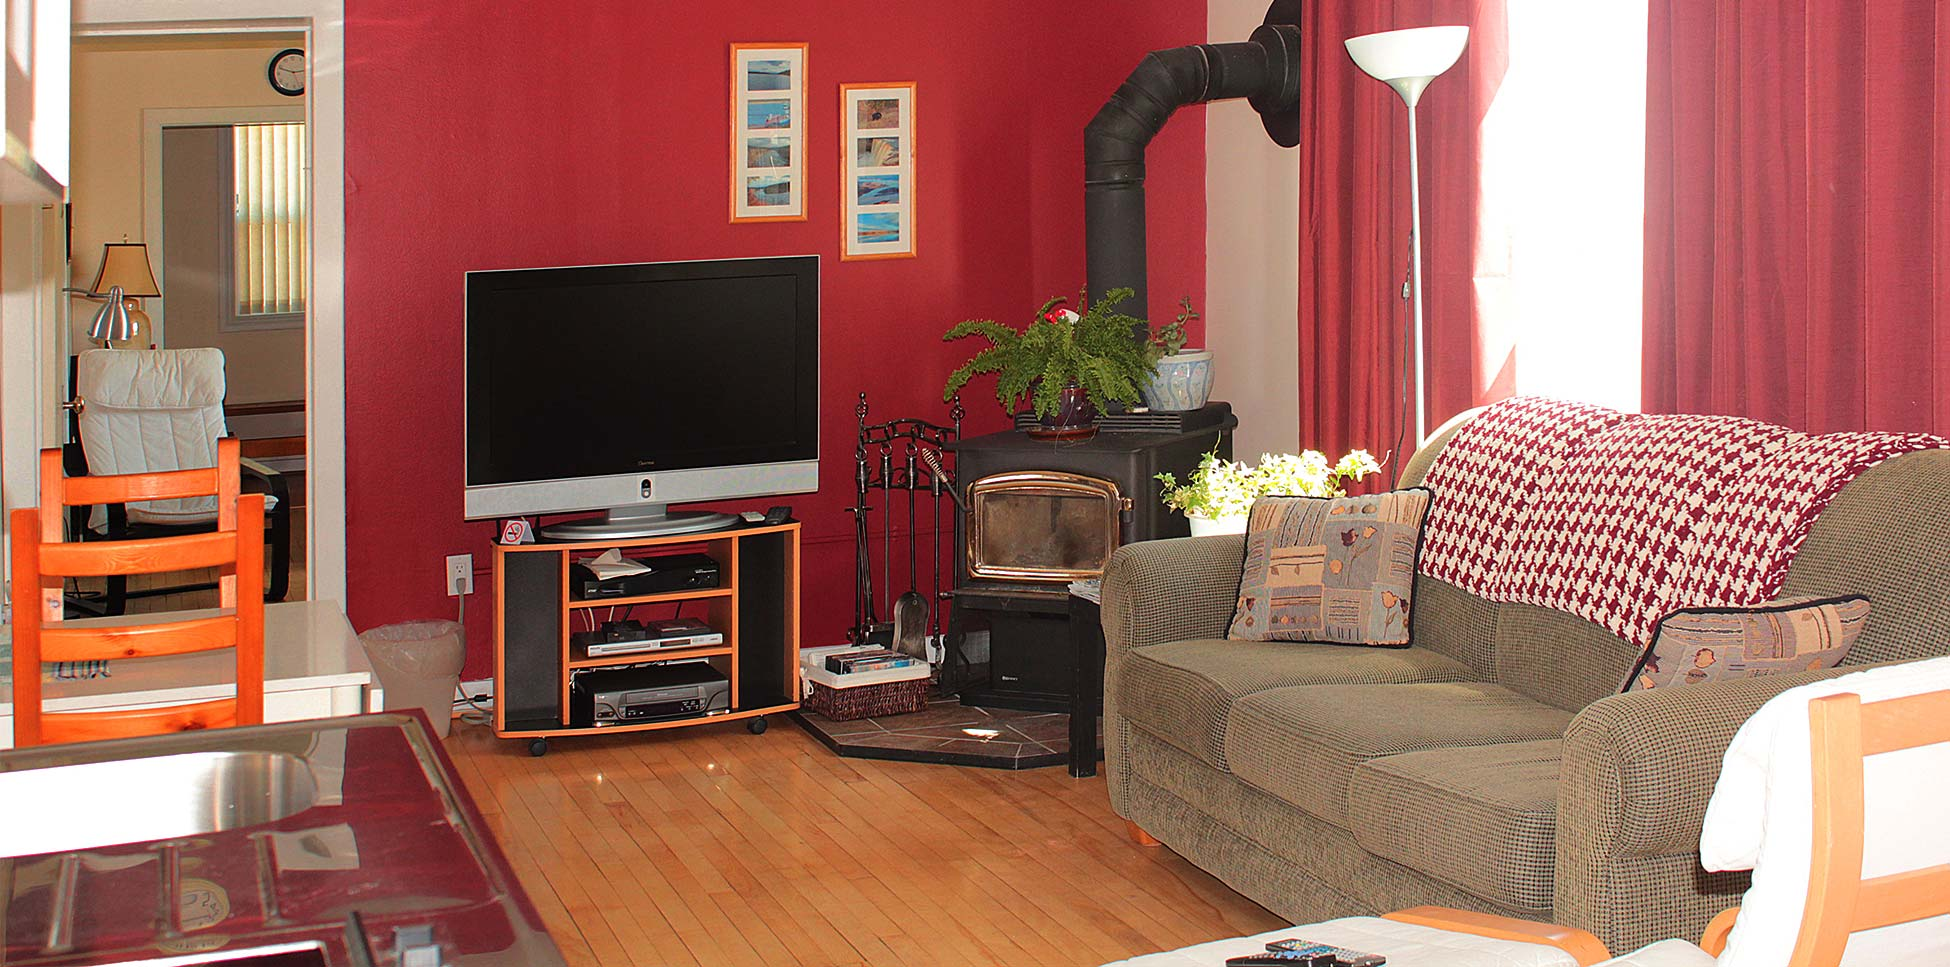 janor-guest-house-living-room-tv